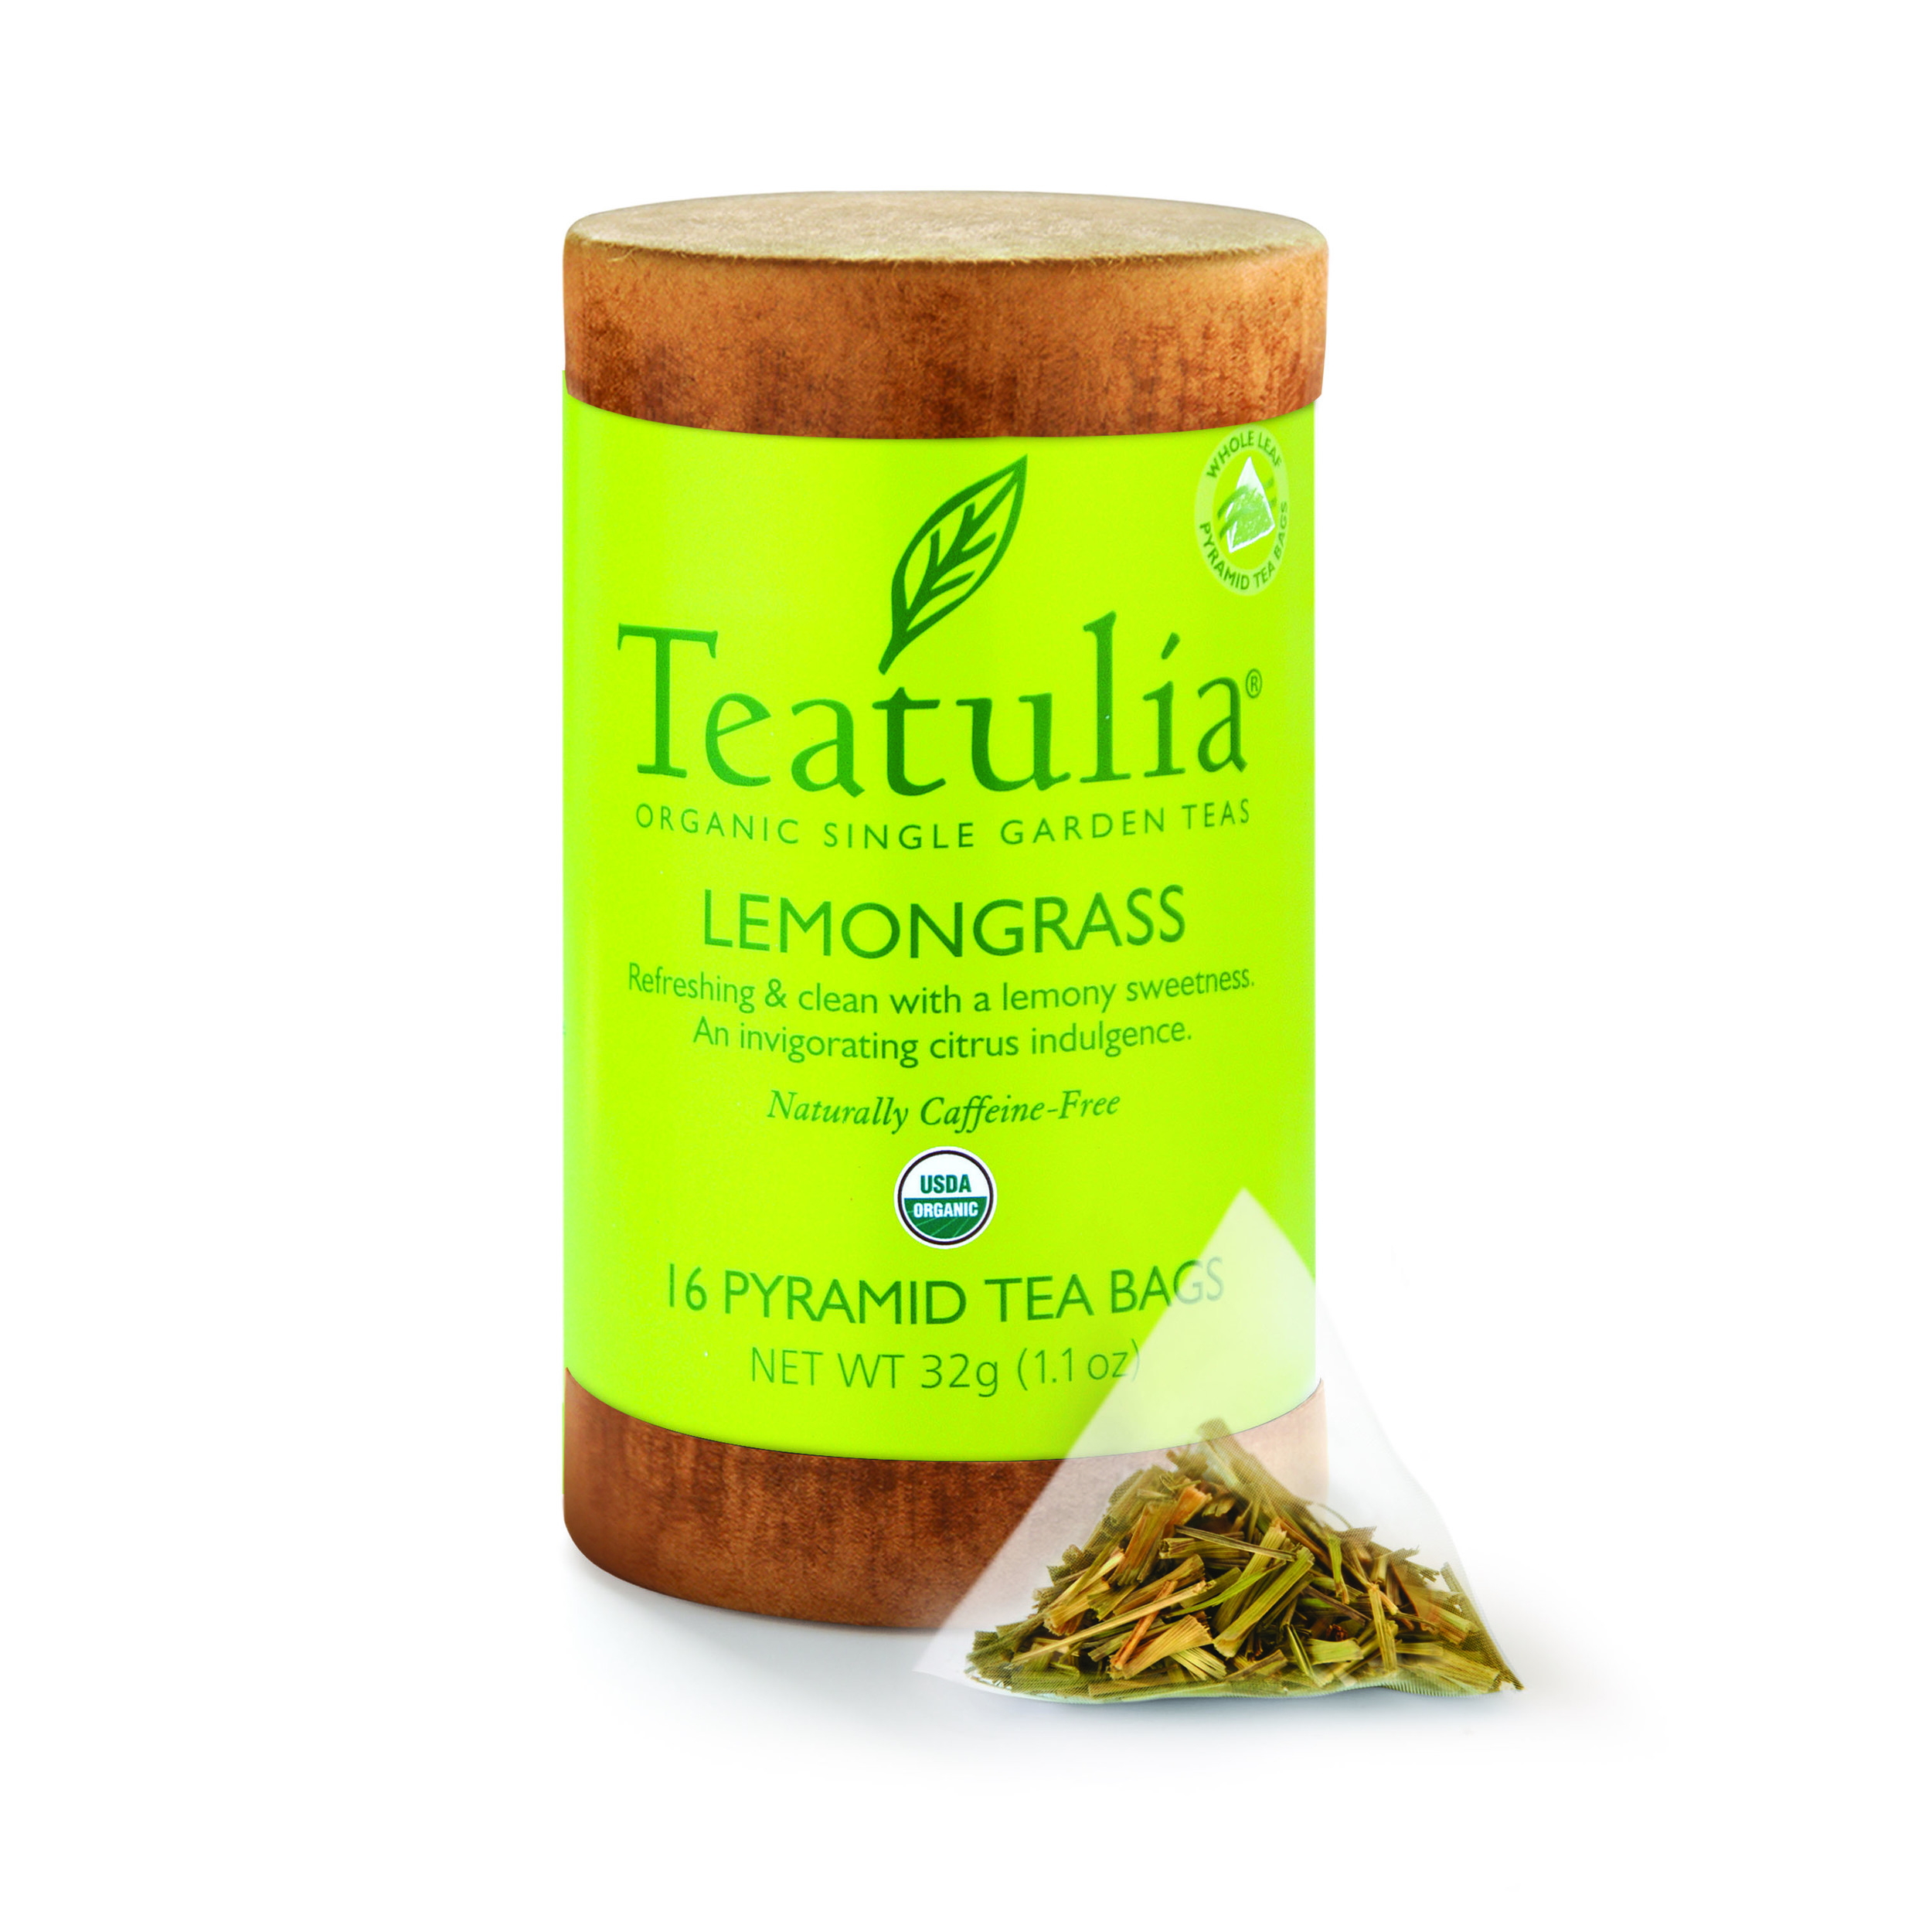 Teatulia_16ct_LemonGrass.jpg